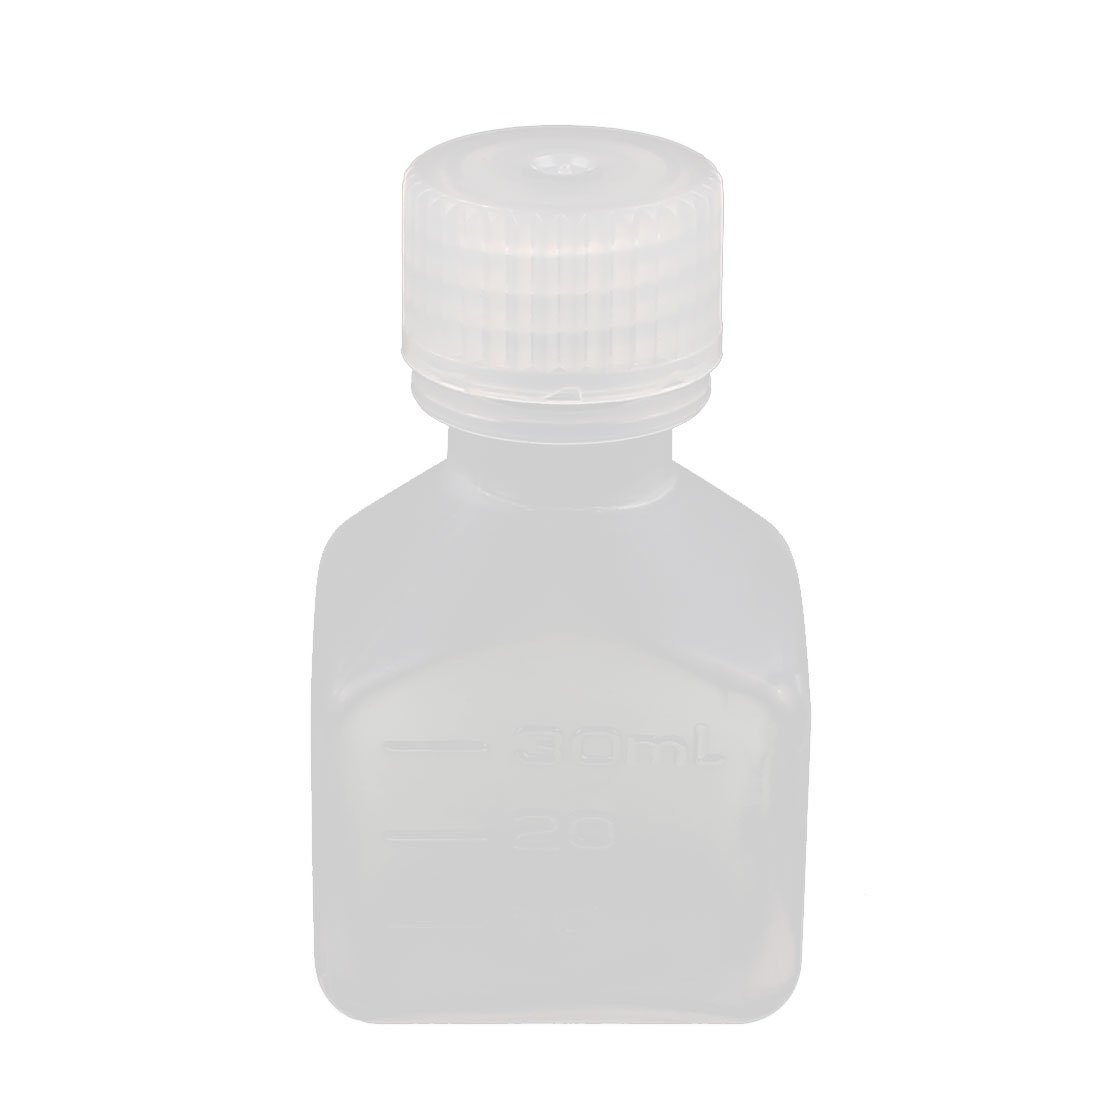 uxcell30ml PP Square Wide Mouth Seal Reagent Bottle Chemical Sample Bottle a16082700ux0337